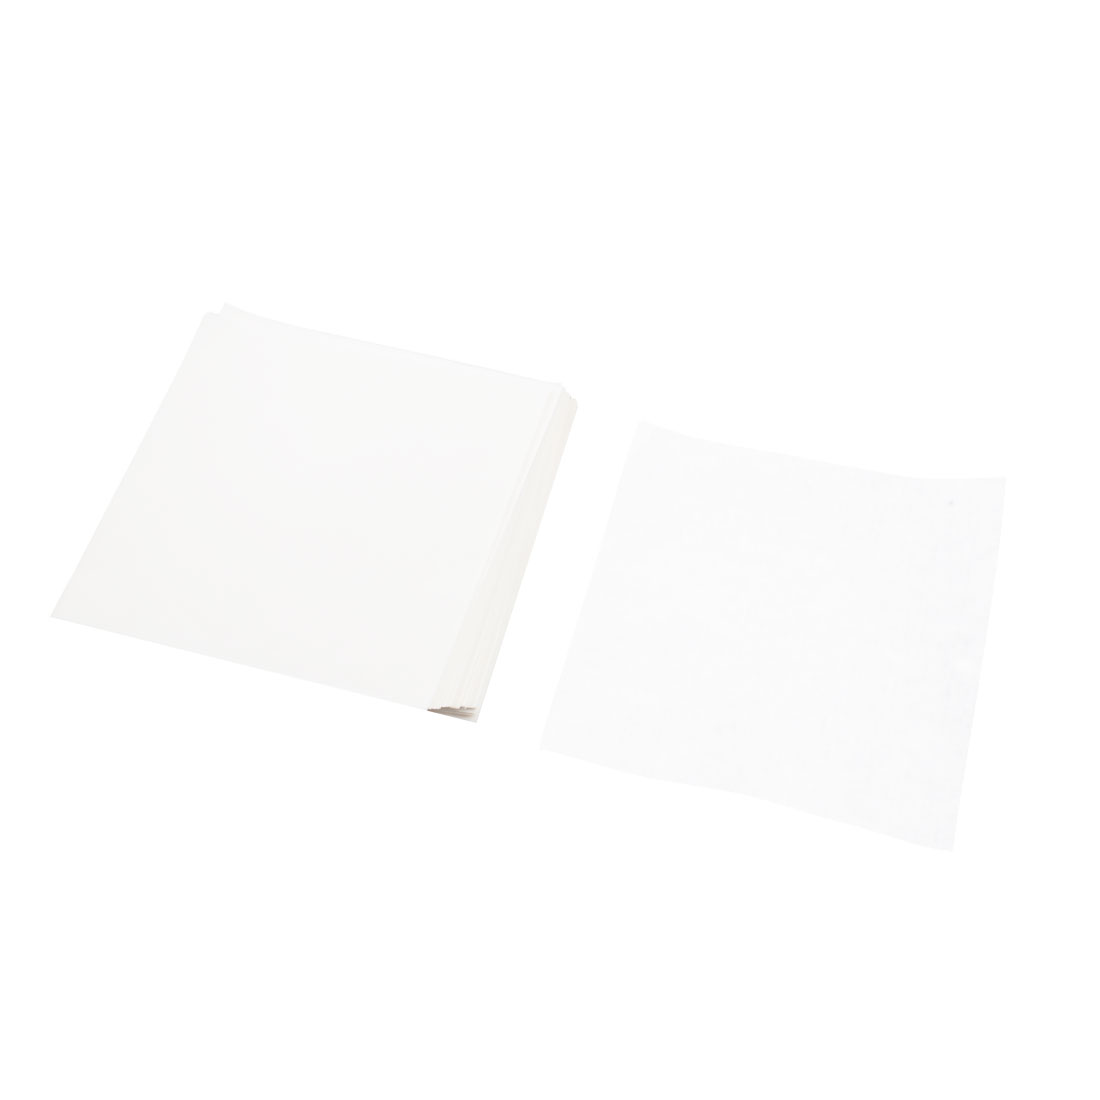 500pcs Laboratory Analytical Square Shaped Weighing Paper 150mmx150mm